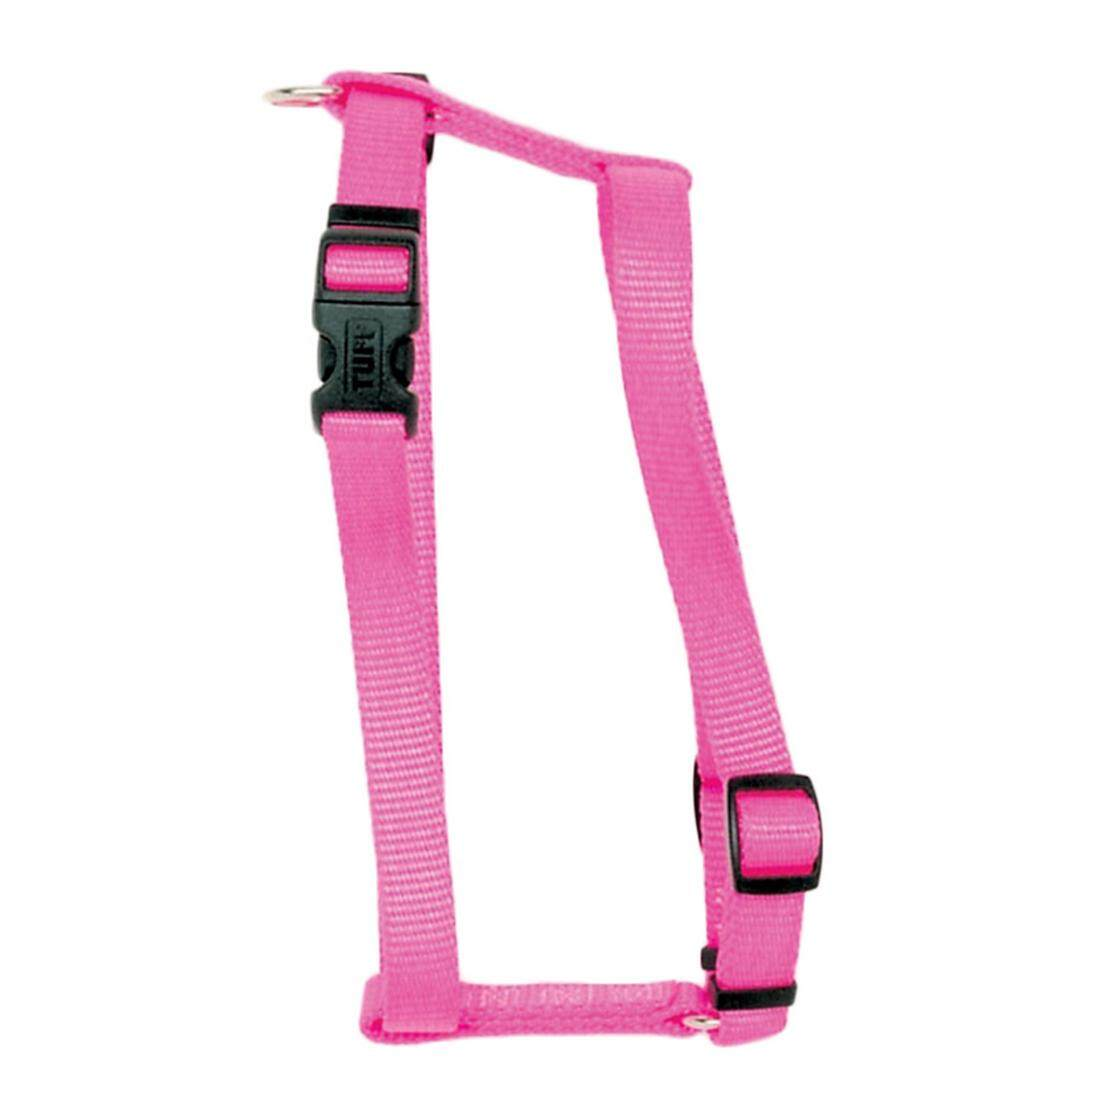 "[Coastal] Harness Adjustable Nylon 1"" - Large - Neon Pink"